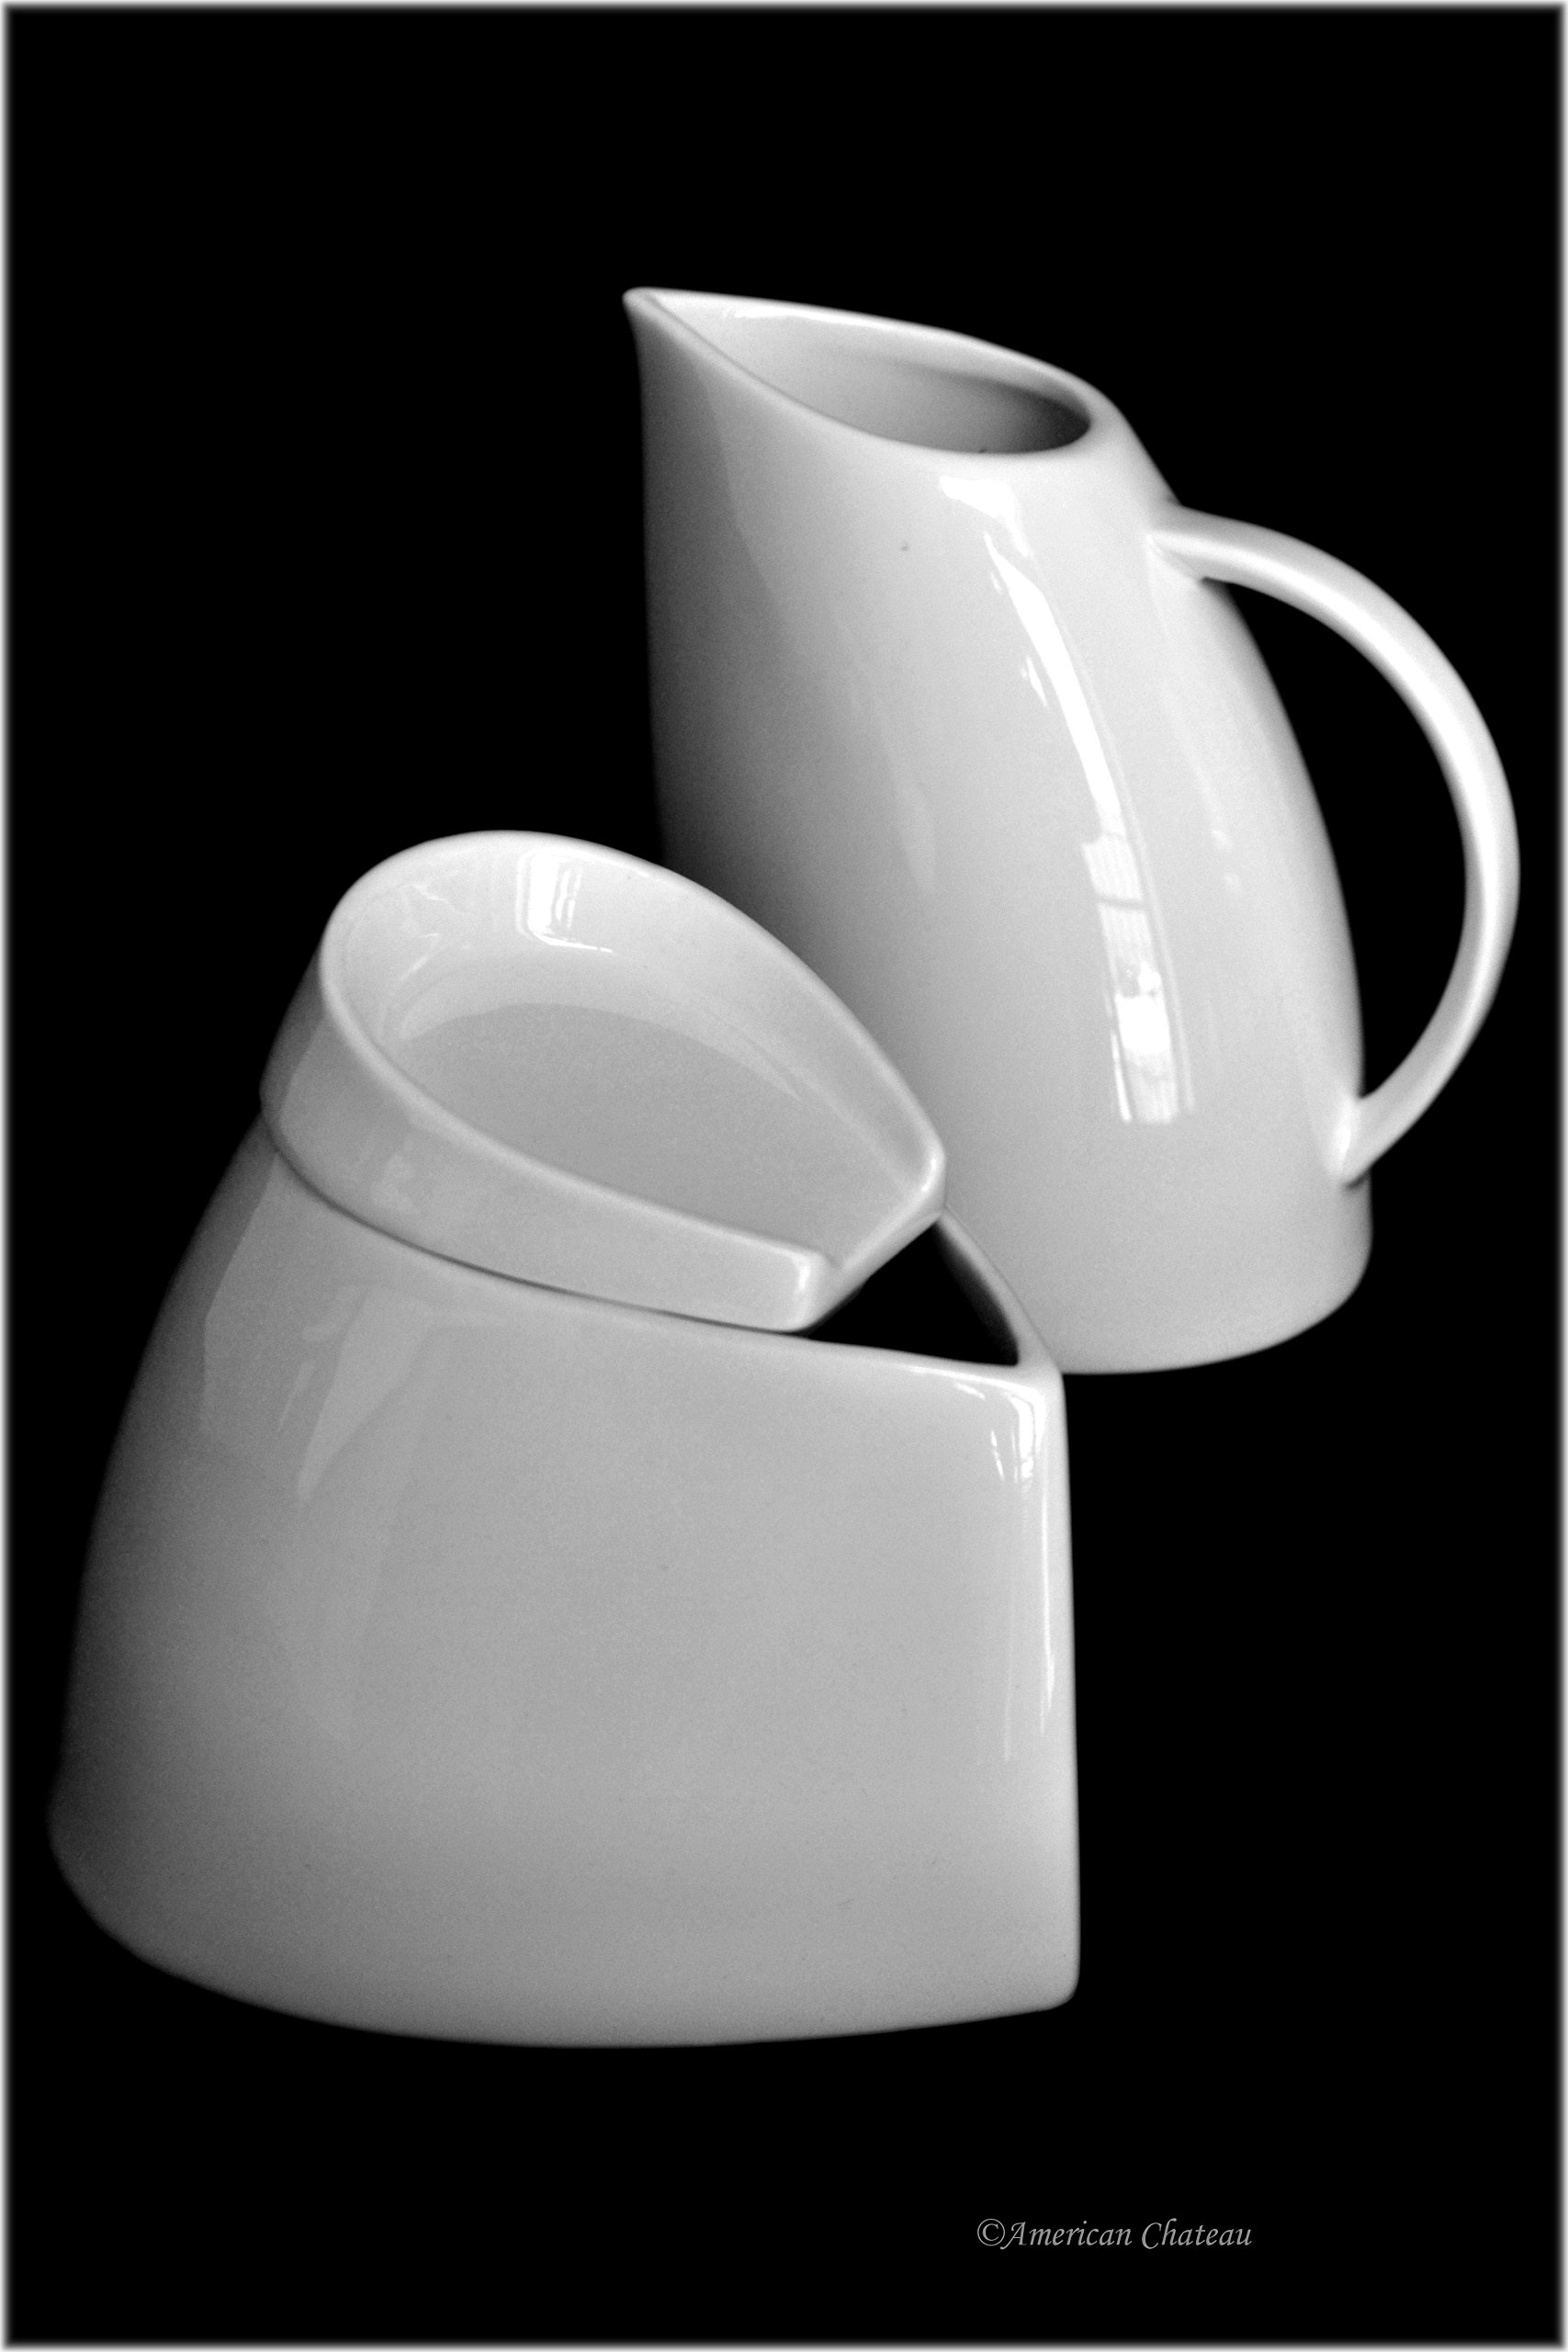 Modern Funky 3 Piece Coffee Porcelain White Covered Sugar Bowl and Creamer Set